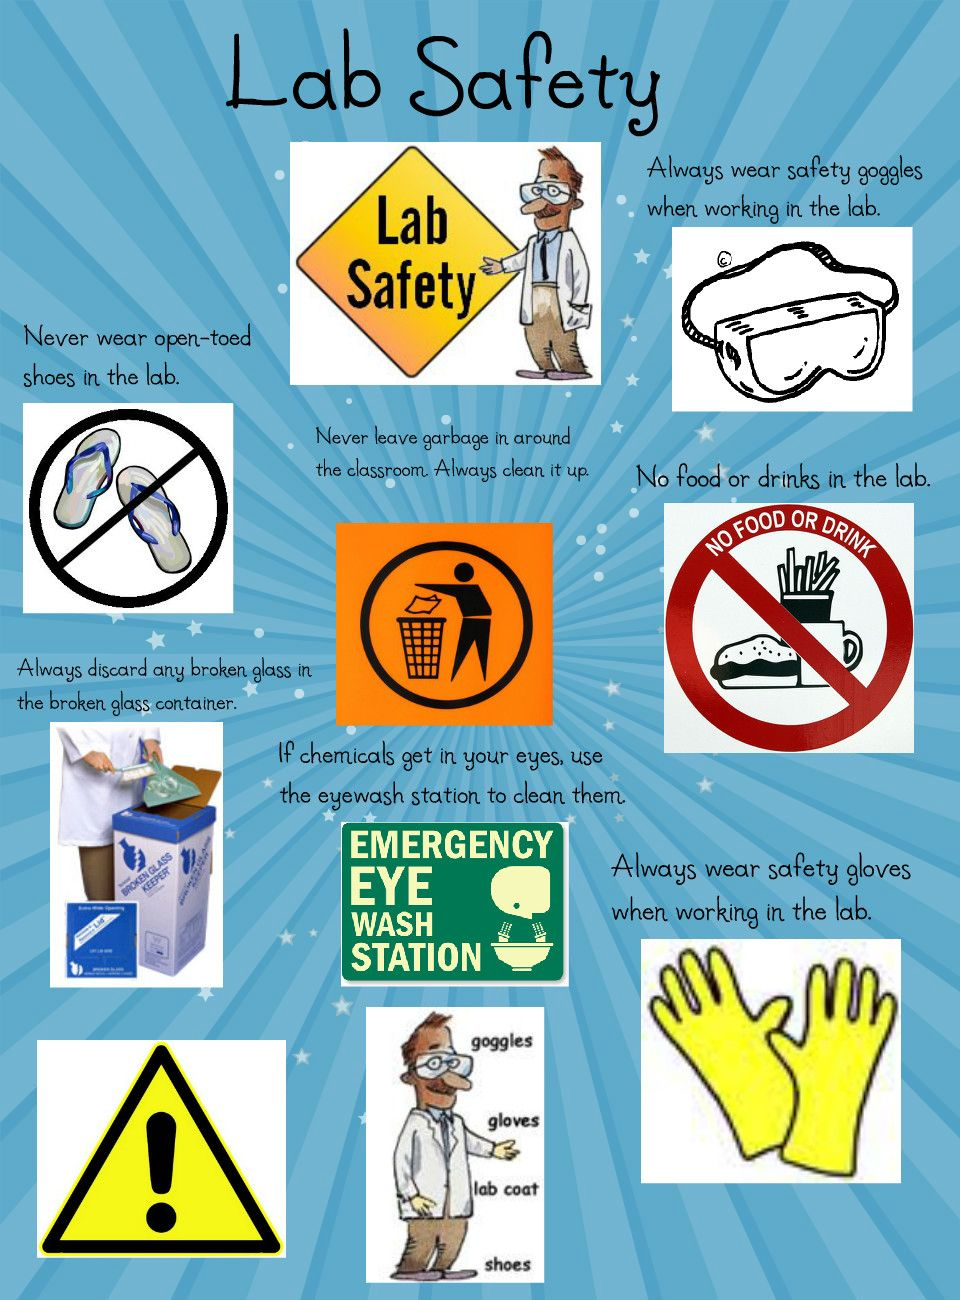 lab safety Google Search Lab Safety Pinterest Lab